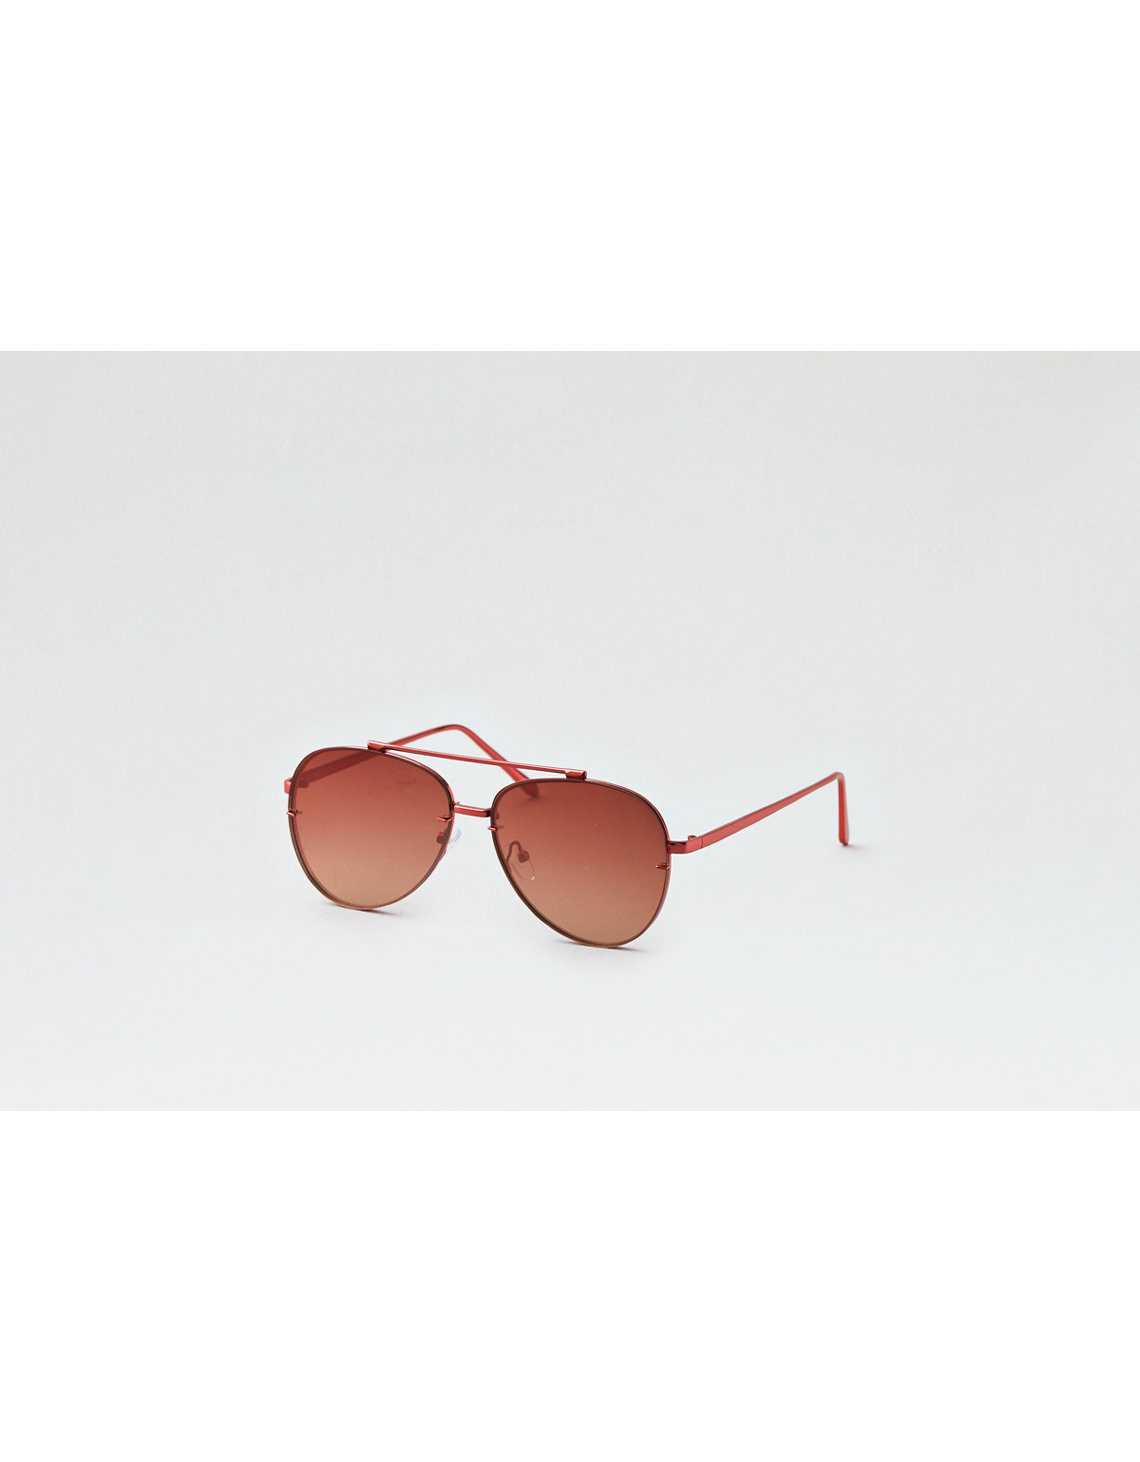 Merveilleux Top Bar Aviator Sunglasses. Placeholder Image. Product Image